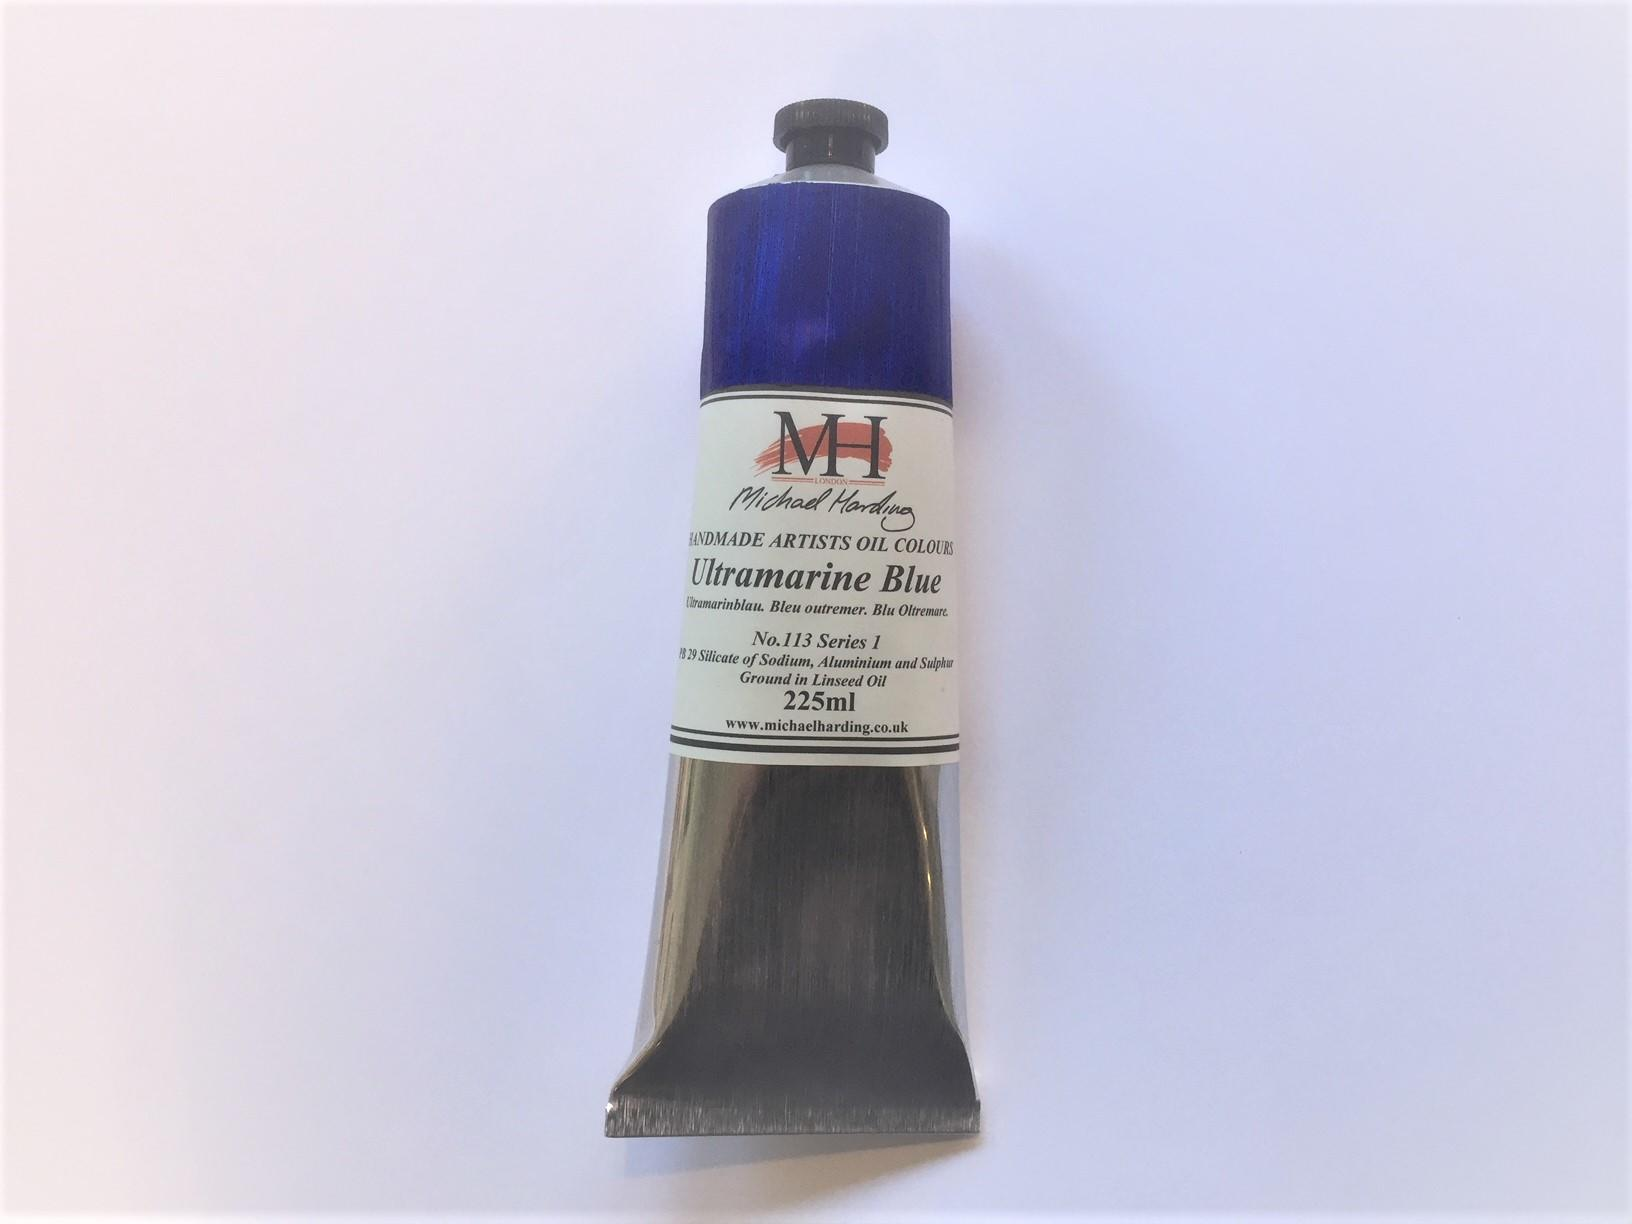 Michael Harding Oil Paint 225ml Tubes